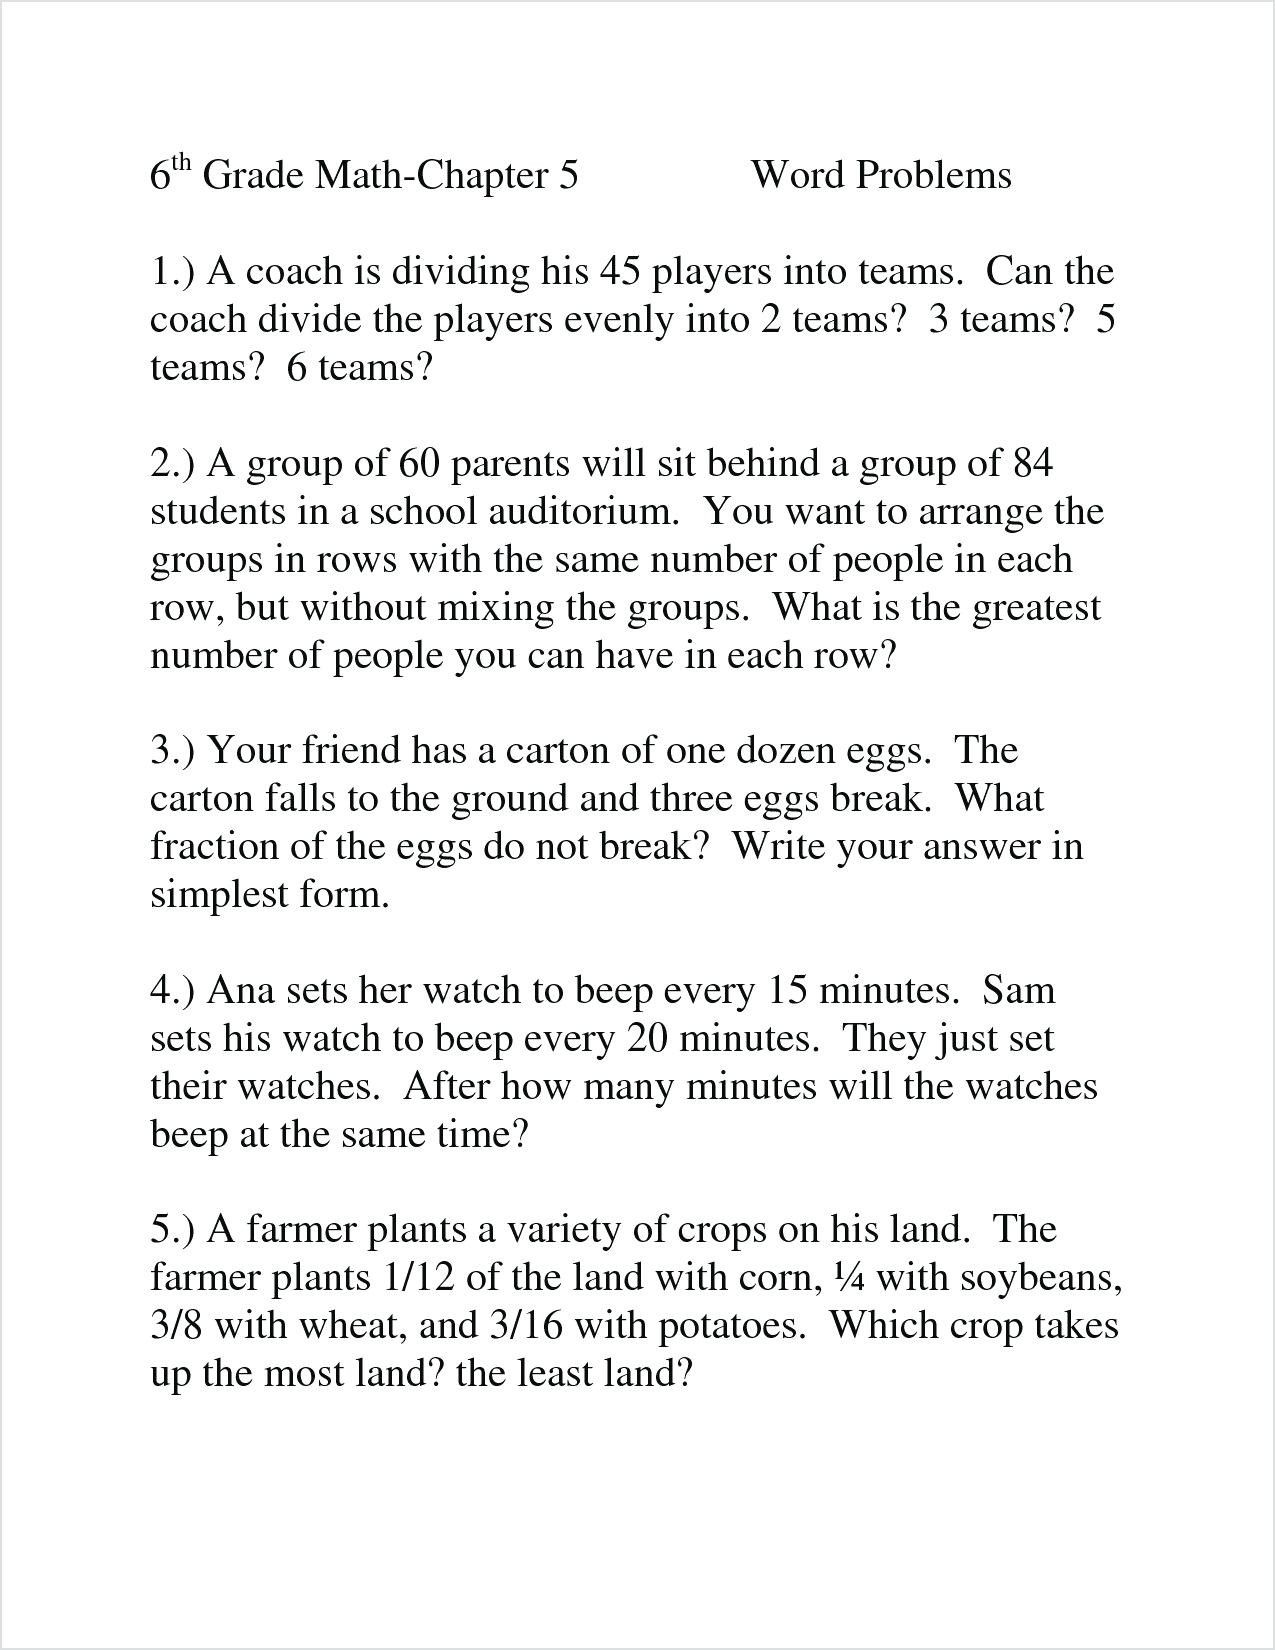 medium resolution of 3 Free Math Worksheets Third Grade 3 Division Word Problems learning grade  5 math word proble...   Word problem worksheets